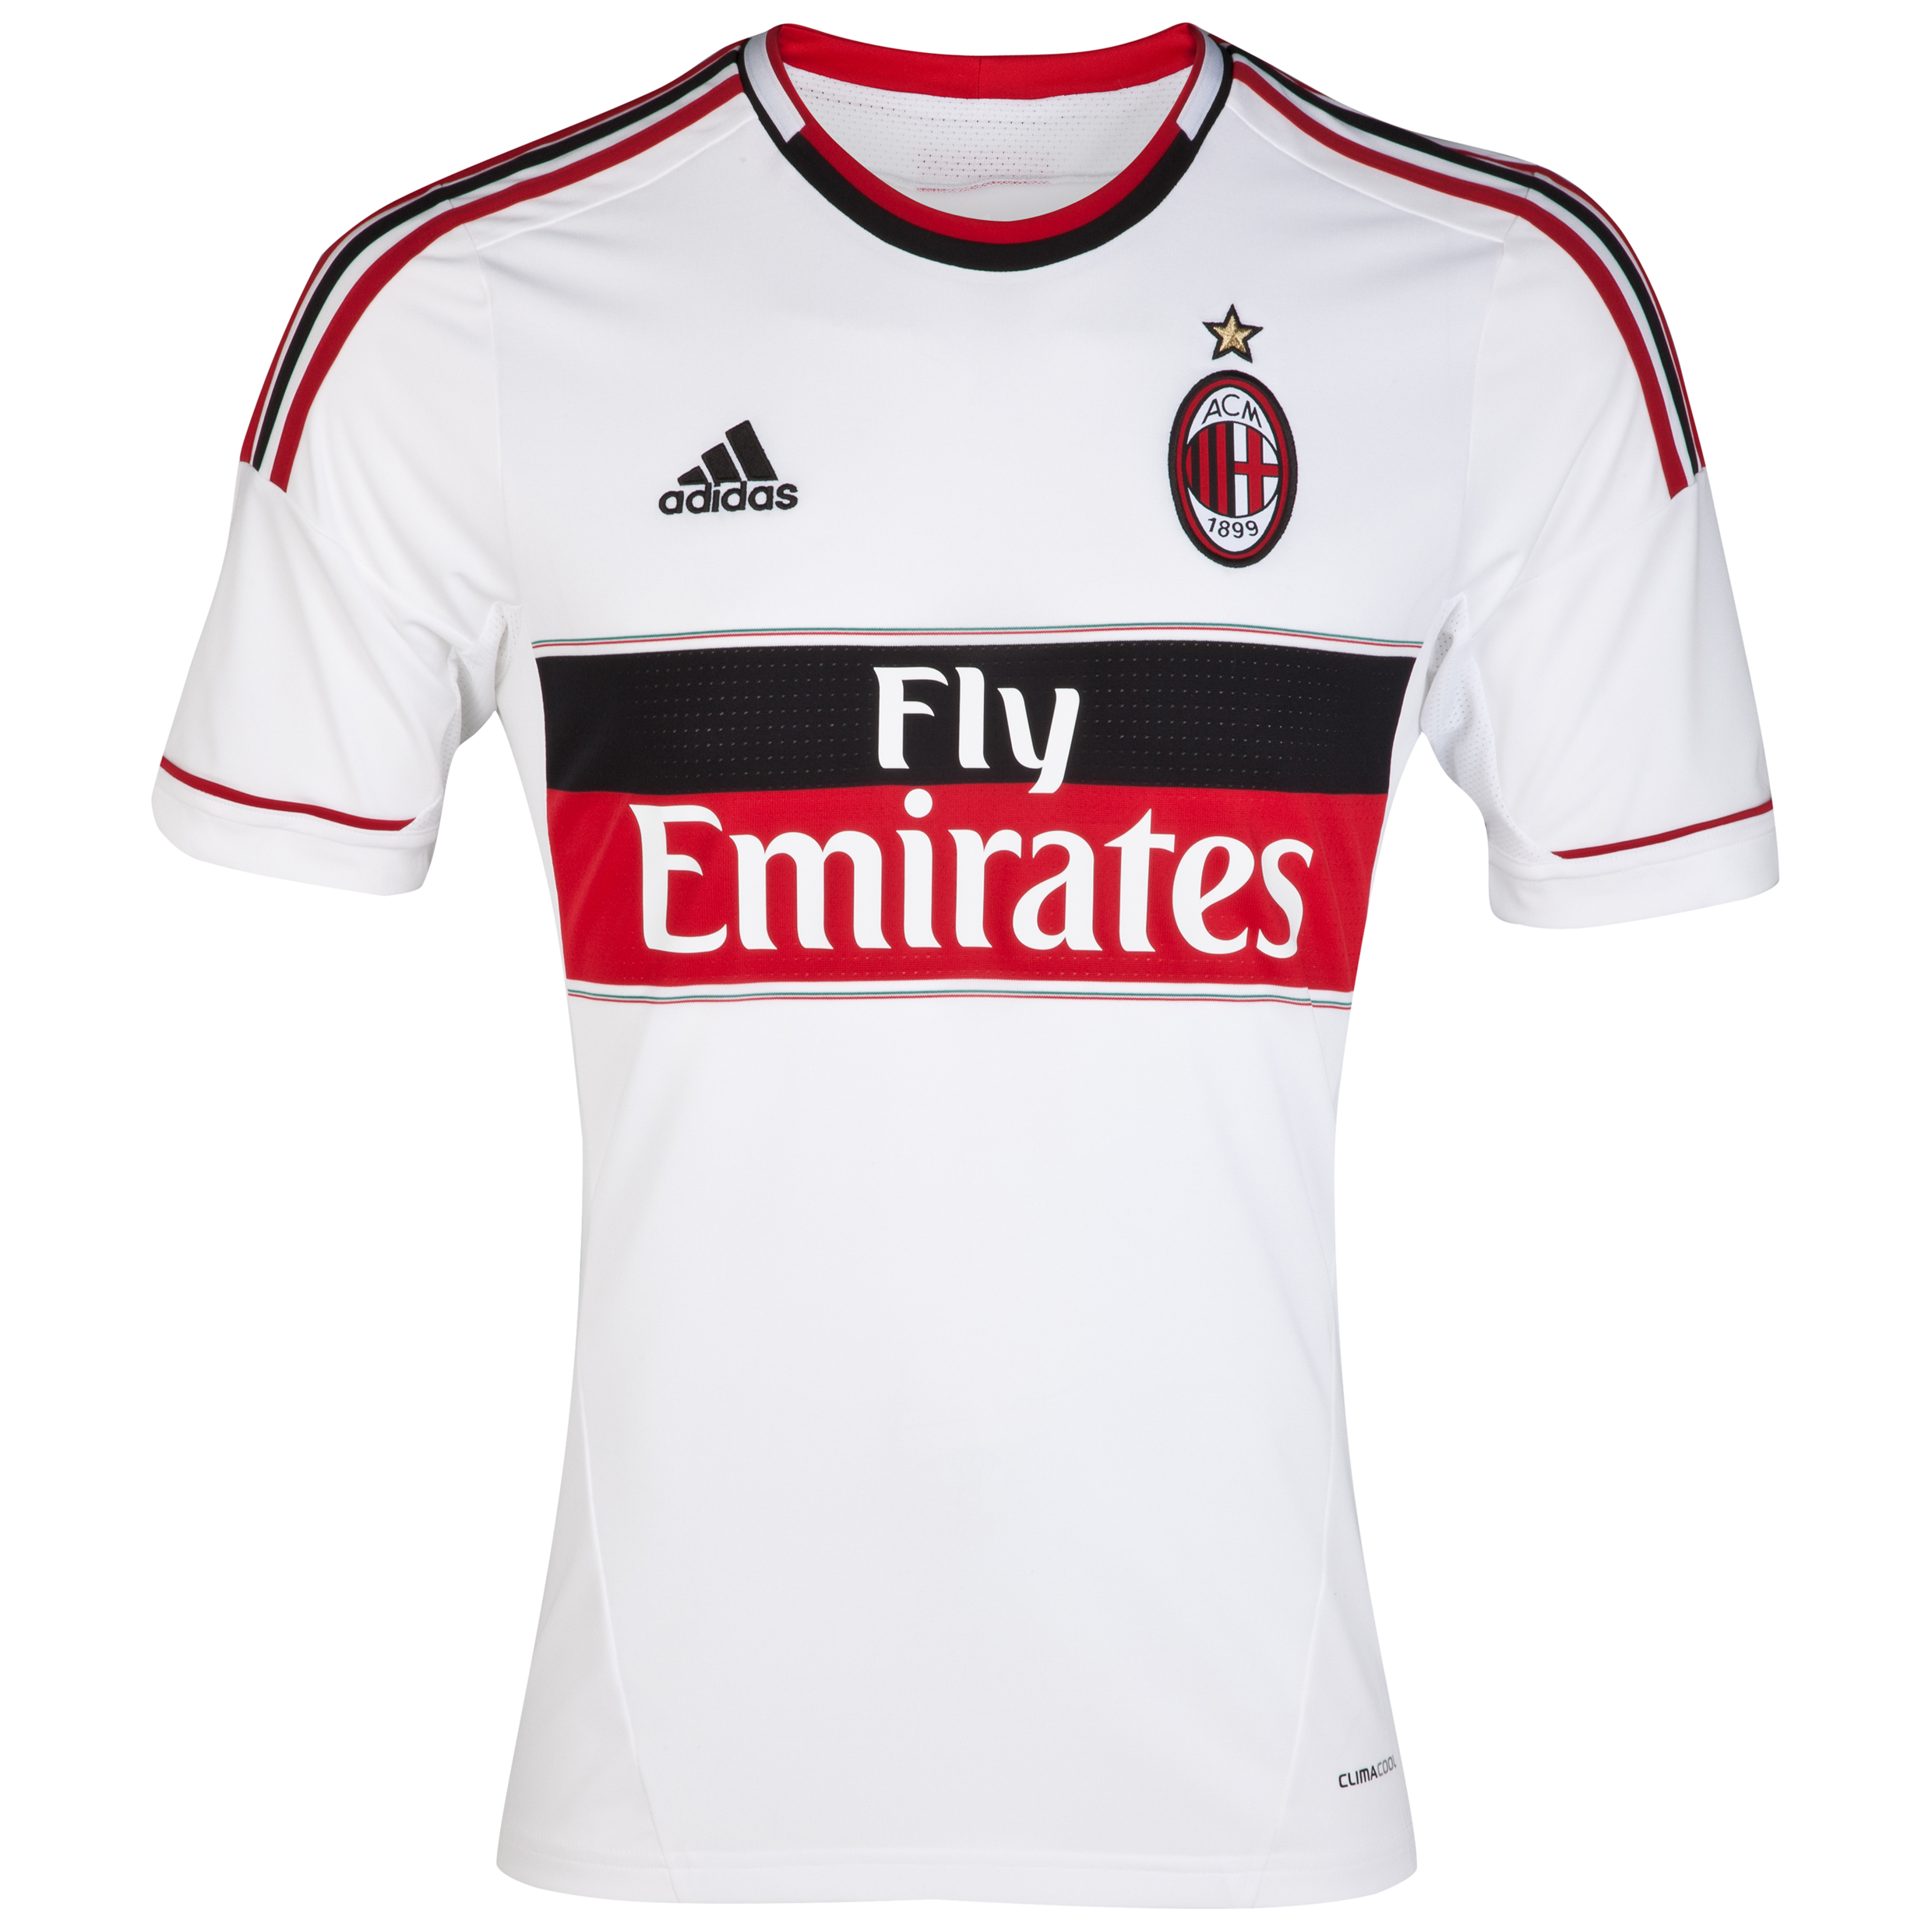 AC Milan Away Shirt 2012/13 - Youths